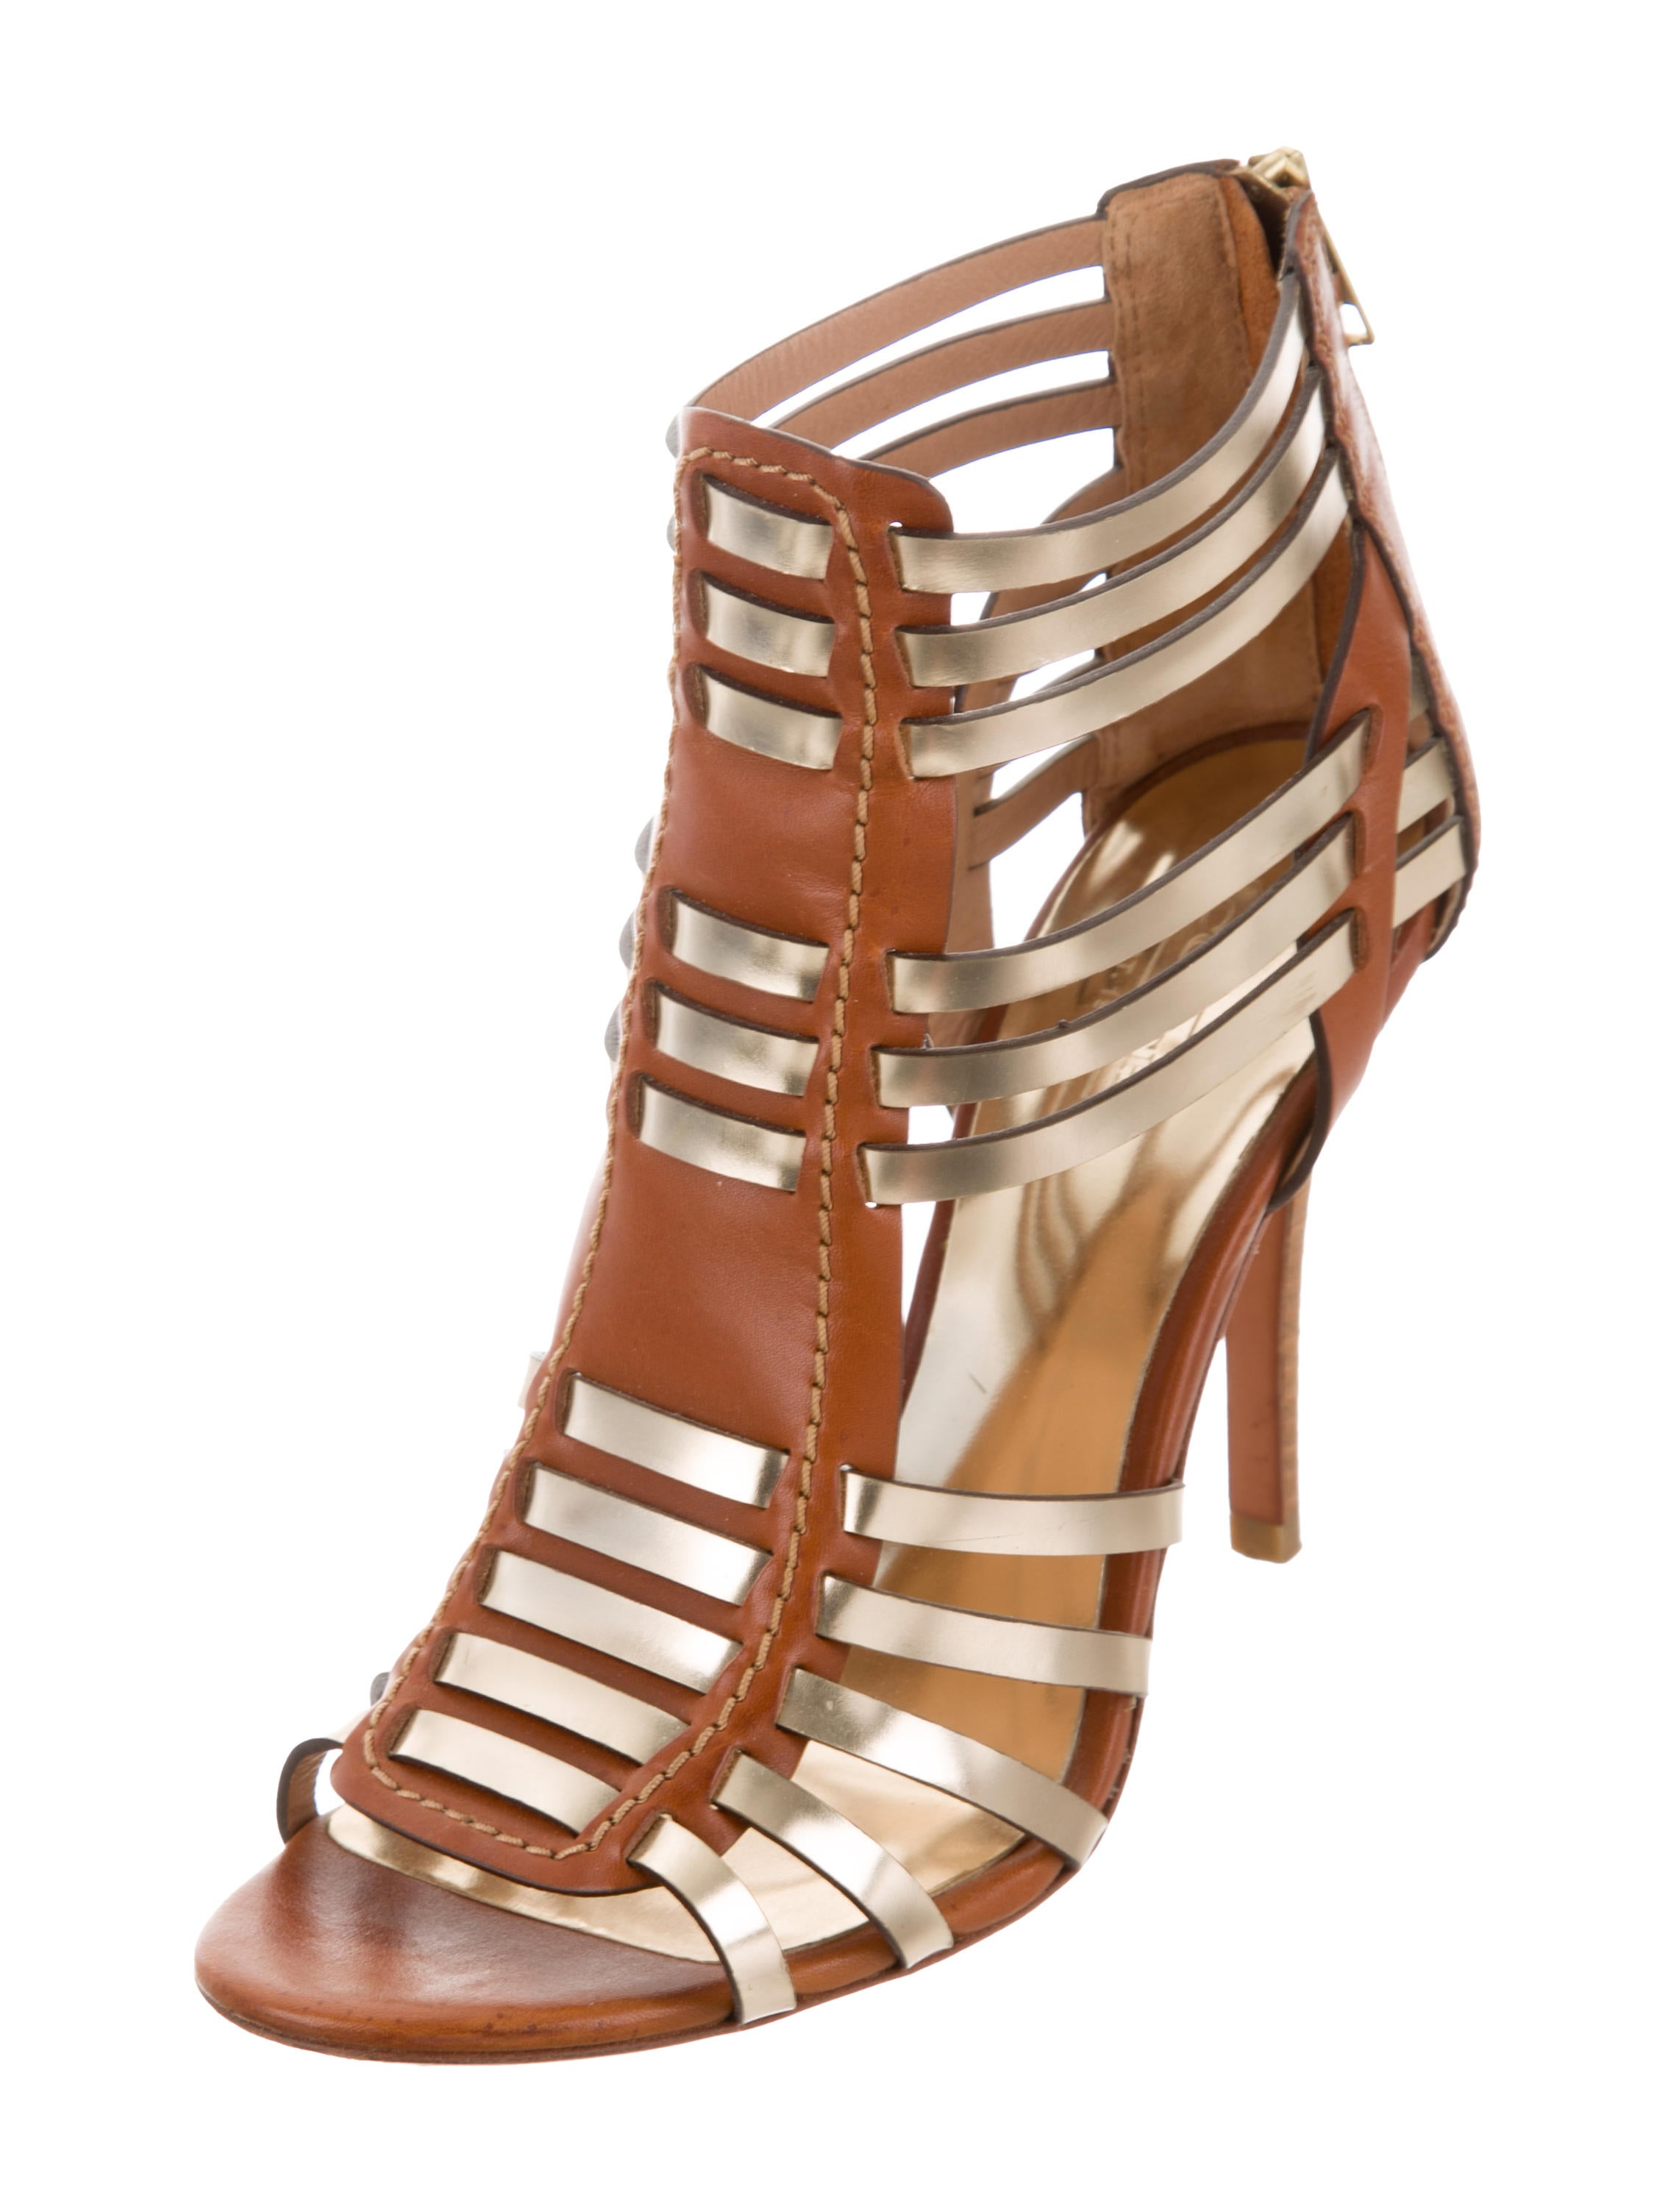 Coach Metallic Cage Sandals for sale bjIJRqKbG